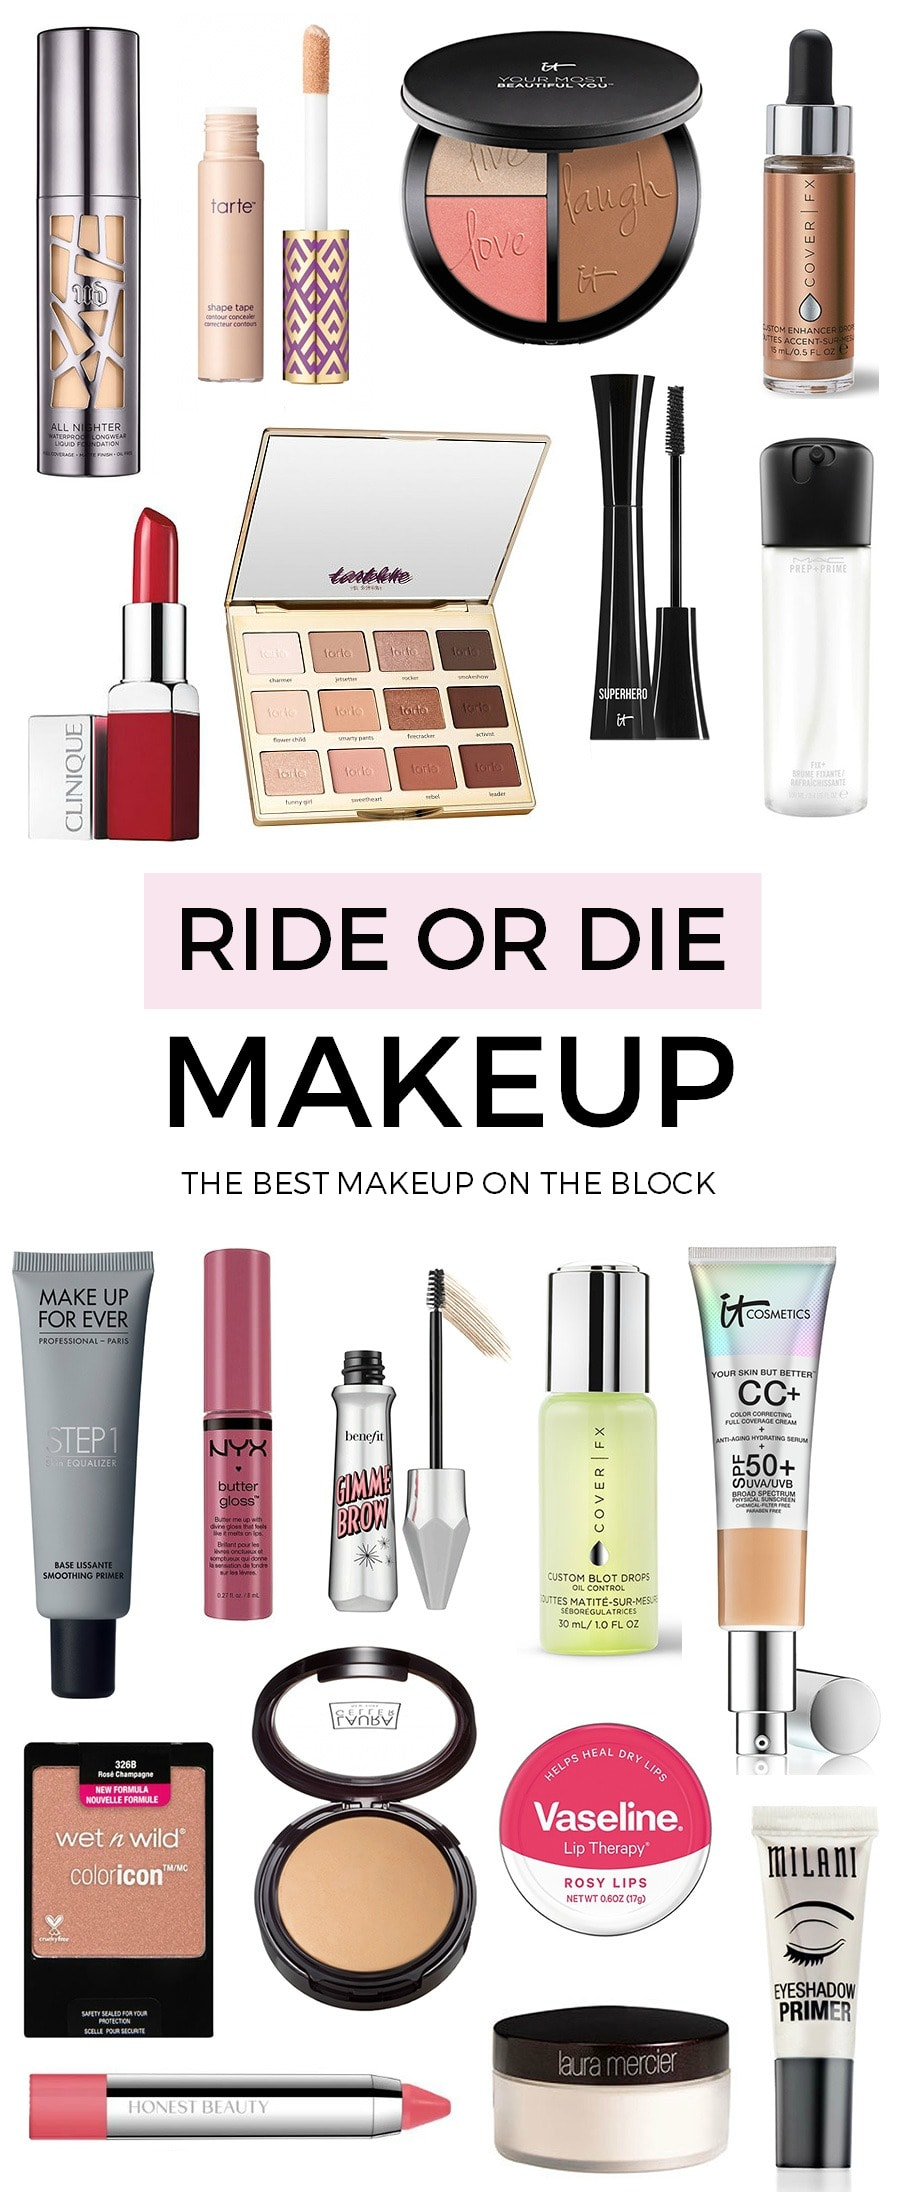 Ride or Die Makeup Kit: Holy grail makeup items that are definitely some of the best beauty products on the market! If you're looking for makeup that's worth every penny, you're definitely going to want to read this post by beauty blogger Ashley Brooke Nicholas.